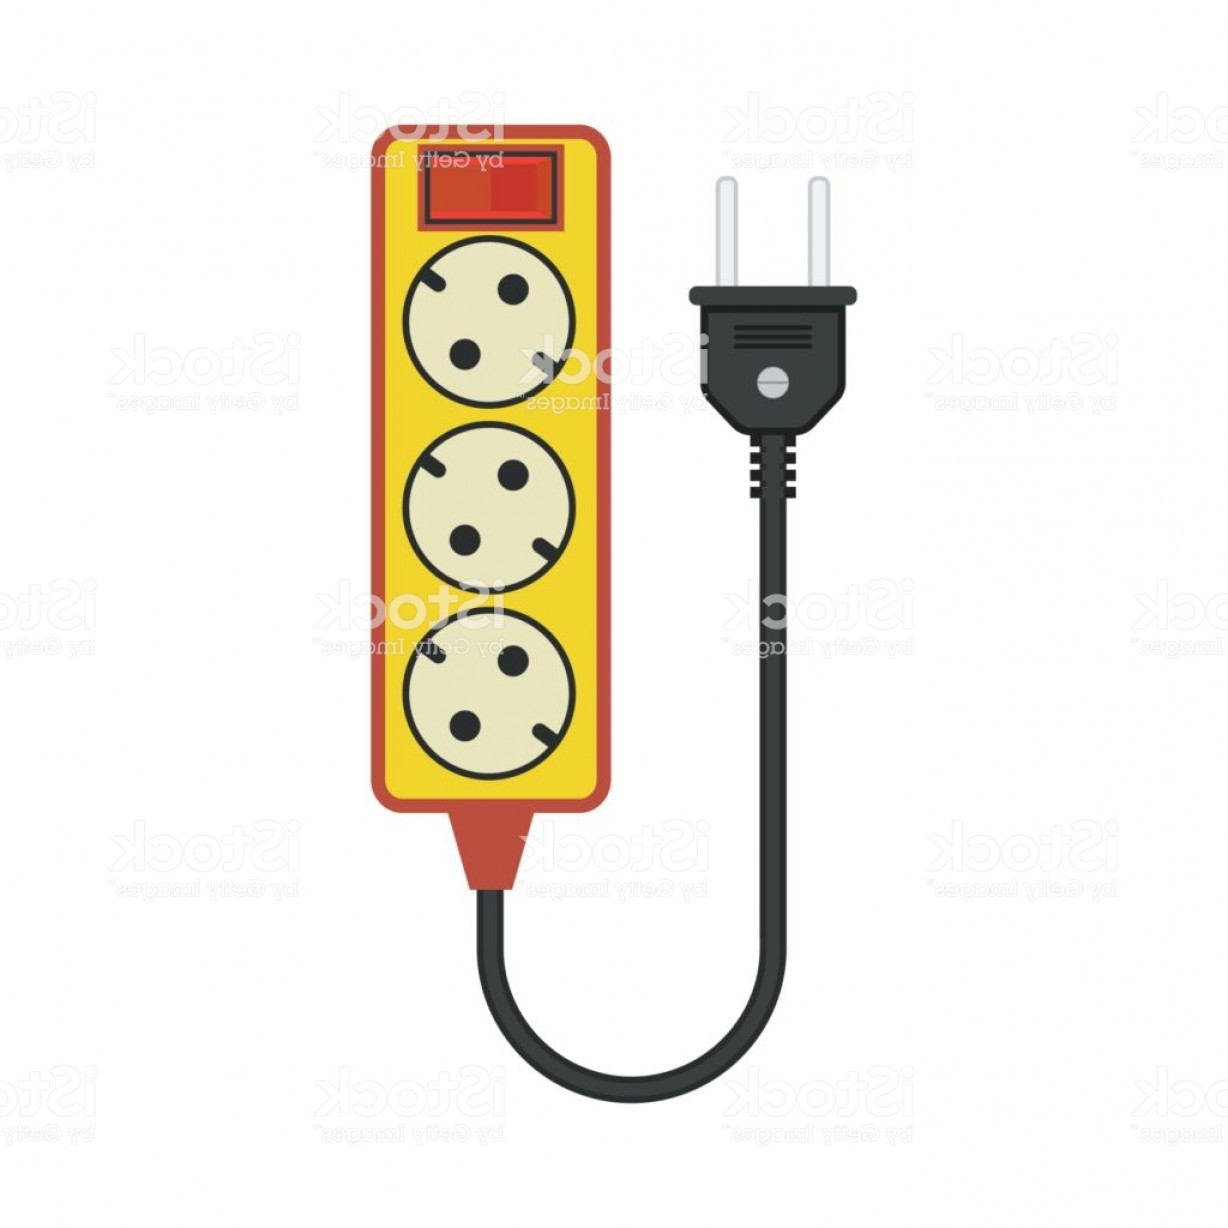 Short Cord Vector: Extension Cord Lead Icon Flat Vector Illustration Gm